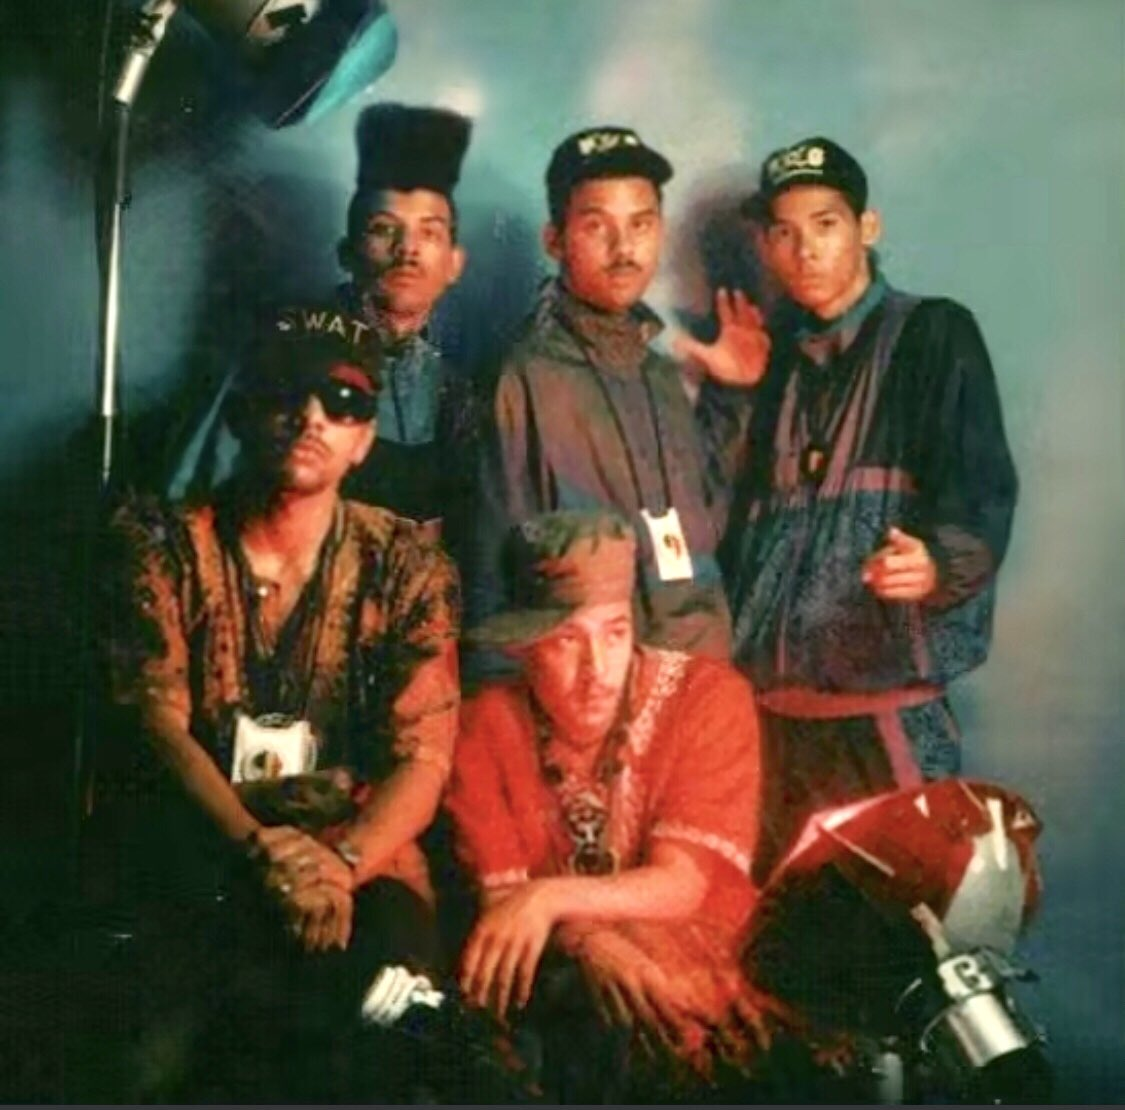 Greetings - this was a photo shoot for our 2nd @ProphetsOfDaCty album titled #BoomStyle in 1991/92. These pics were also used as publicity shots. The crew started to expand from this year onwards. #HipHop #history #southafrica https://t.co/vPo0b98VBQ